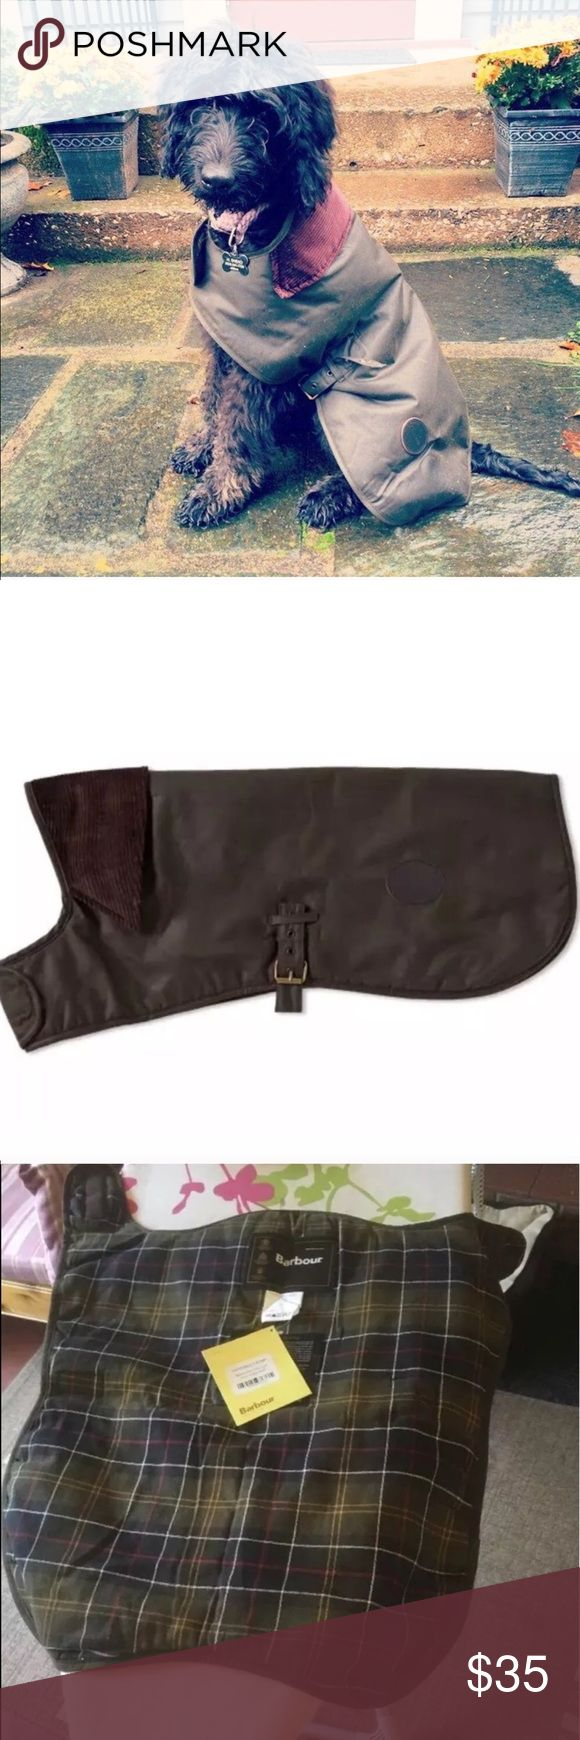 Barbour waxed cotton dog coat My dog wore this 2-3 times when she was a puppy and since outgrew it. Please not it is NOT NWT and was just photographed with the tag. Fits golden retriever sized dogs, up to 55 pounds. Great classic style for a great price! Barbour Jackets & Coats